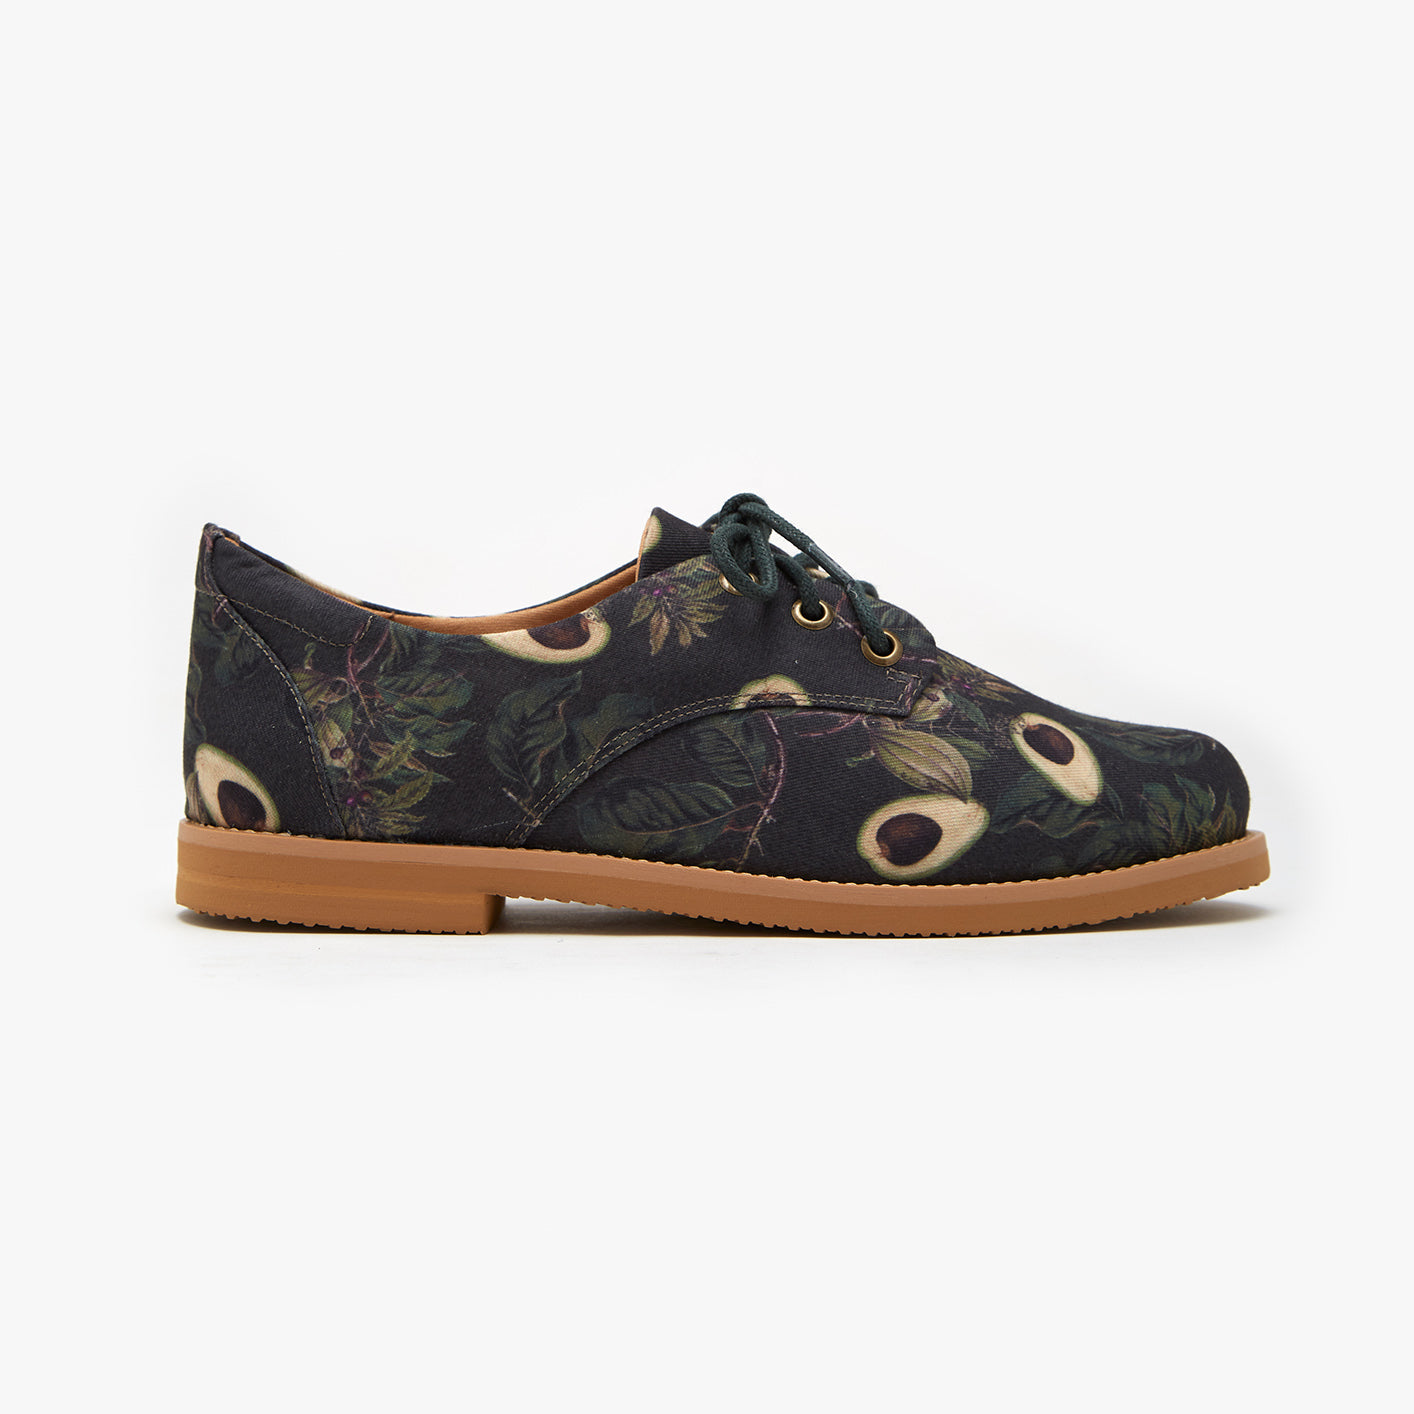 AVO OXFORD - Insectashoes brasil